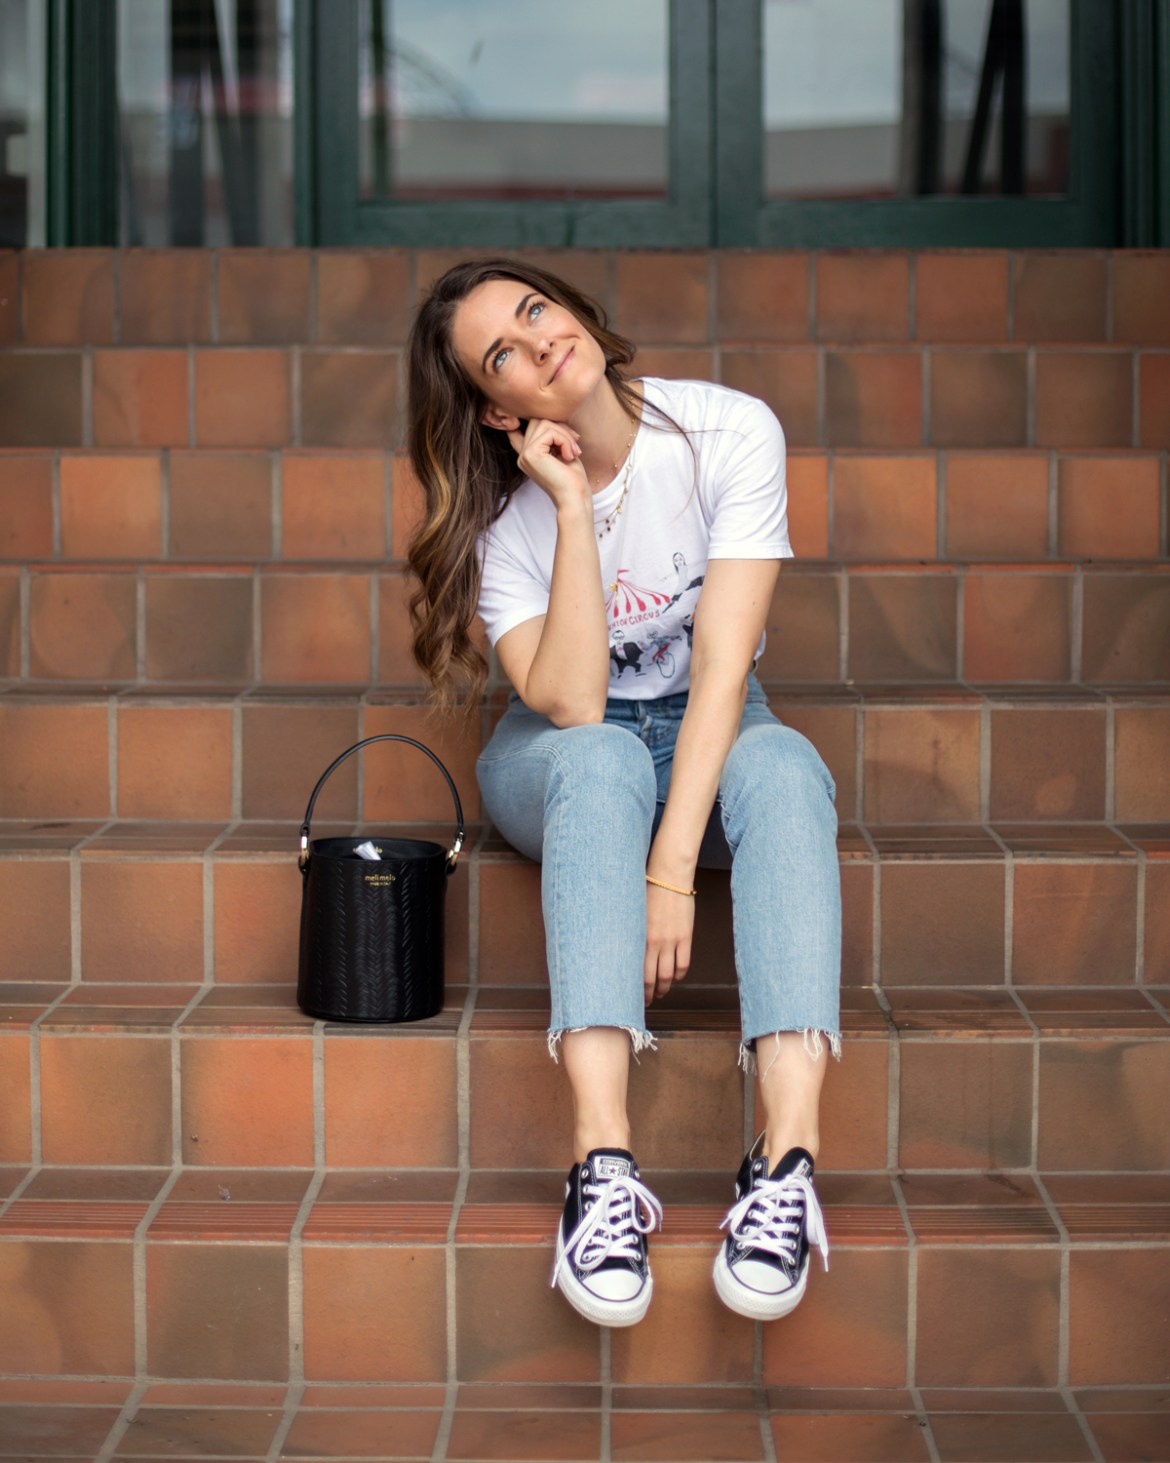 bucket bag outfit ideas featuring Meli Melo Santina bucket bag in black worn by fashion blogger Jenelle Witty from Inspiring Wit. With Unfortunate Portrait graphic tee, Levi's Wedgie jeans and Converse sneakers from Shopbop and Astley Clarke gold Mille Bangle